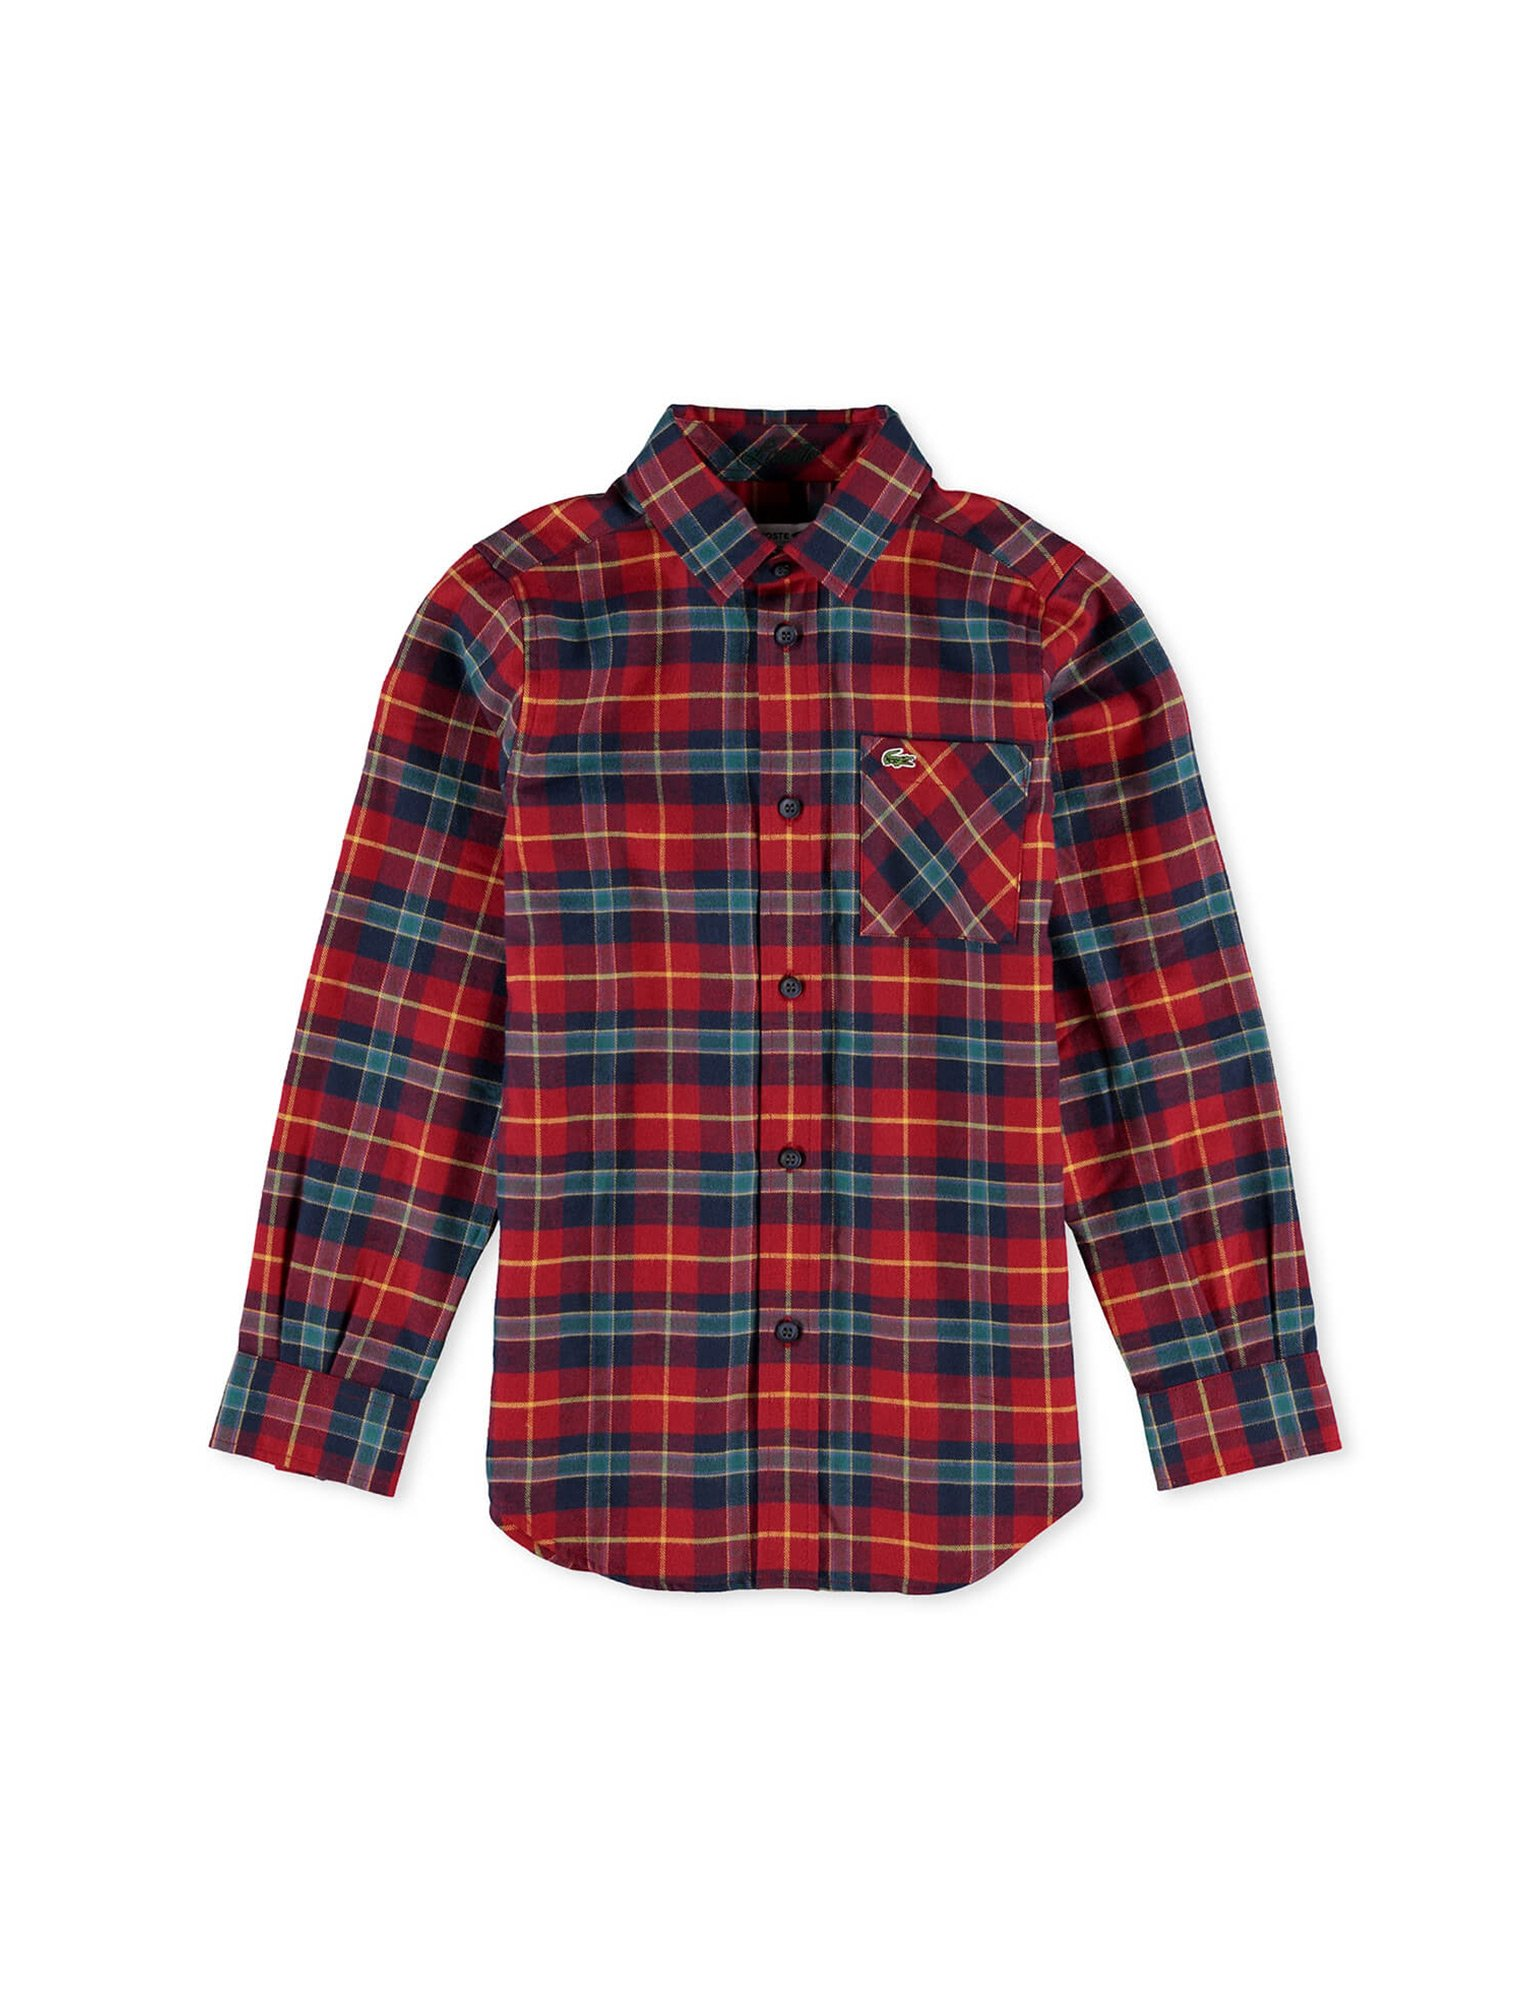 Lacoste Boy's Checked Long Sleeve Shirt in Size 16 Years (176 cm) Red by Lacoste